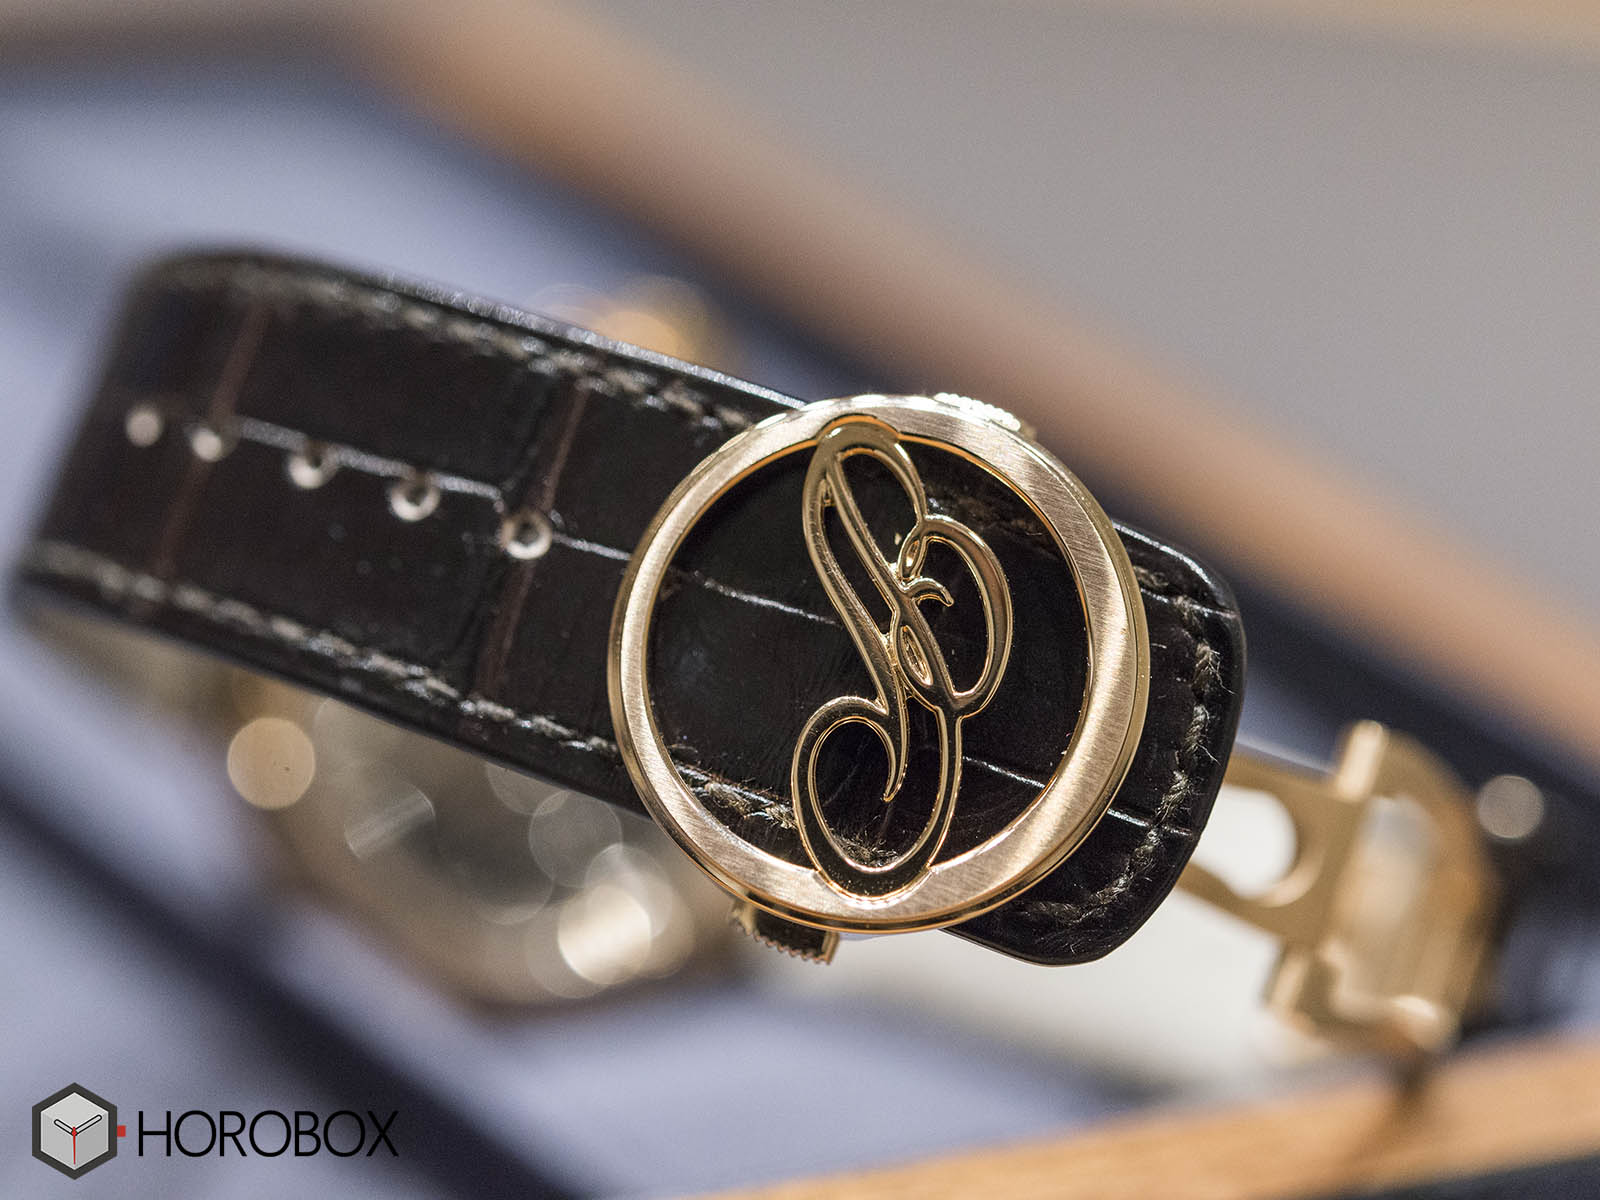 Breguet-Marine-Equation-Marchante-5887-18K-5.jpg